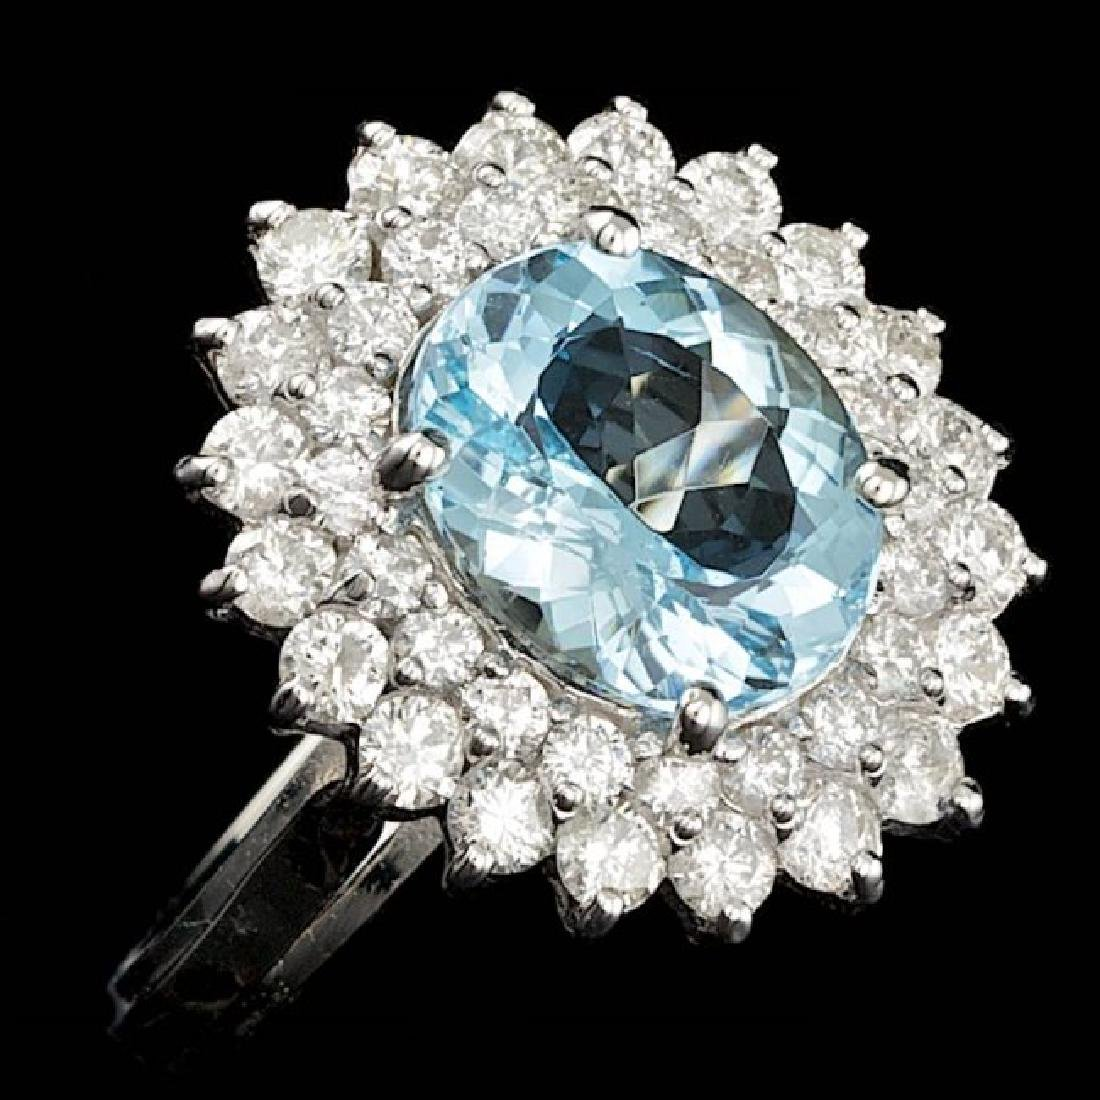 14k Gold 3.00ct Aquamarine 1.60ct Diamond Ring - 3